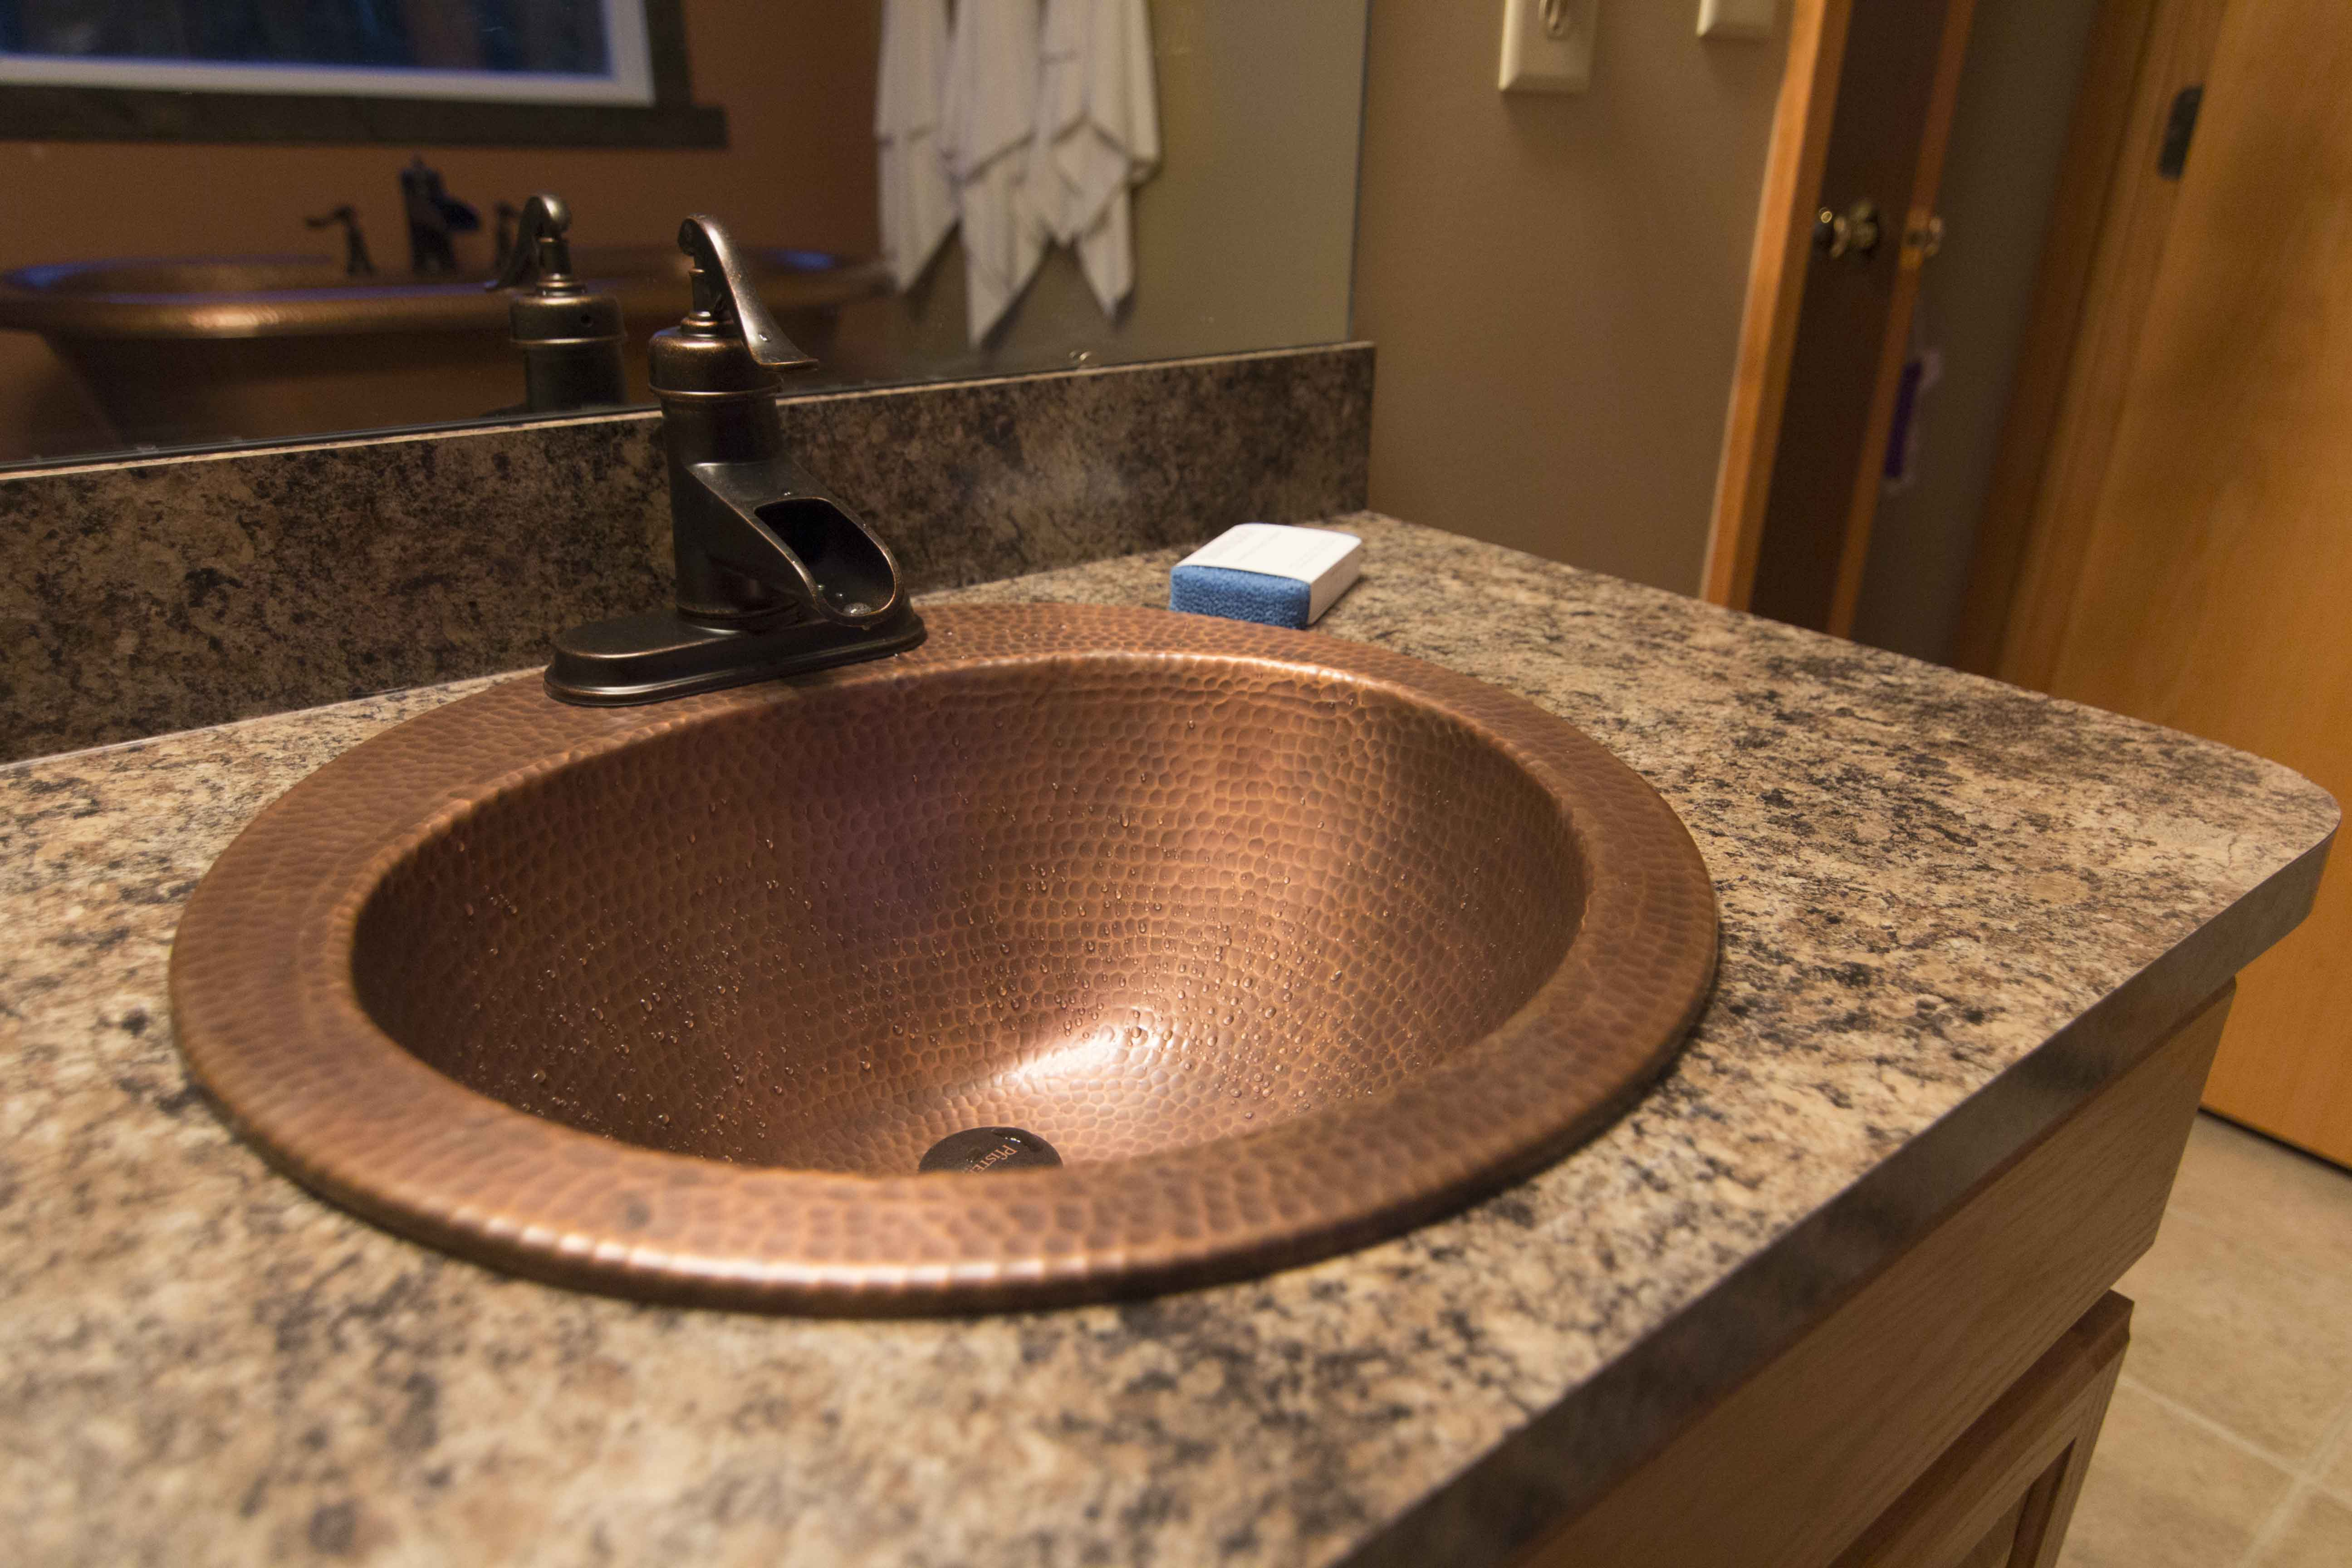 How To Replace A Copper Bathroom Sink The Bell Drop In Copper Sink